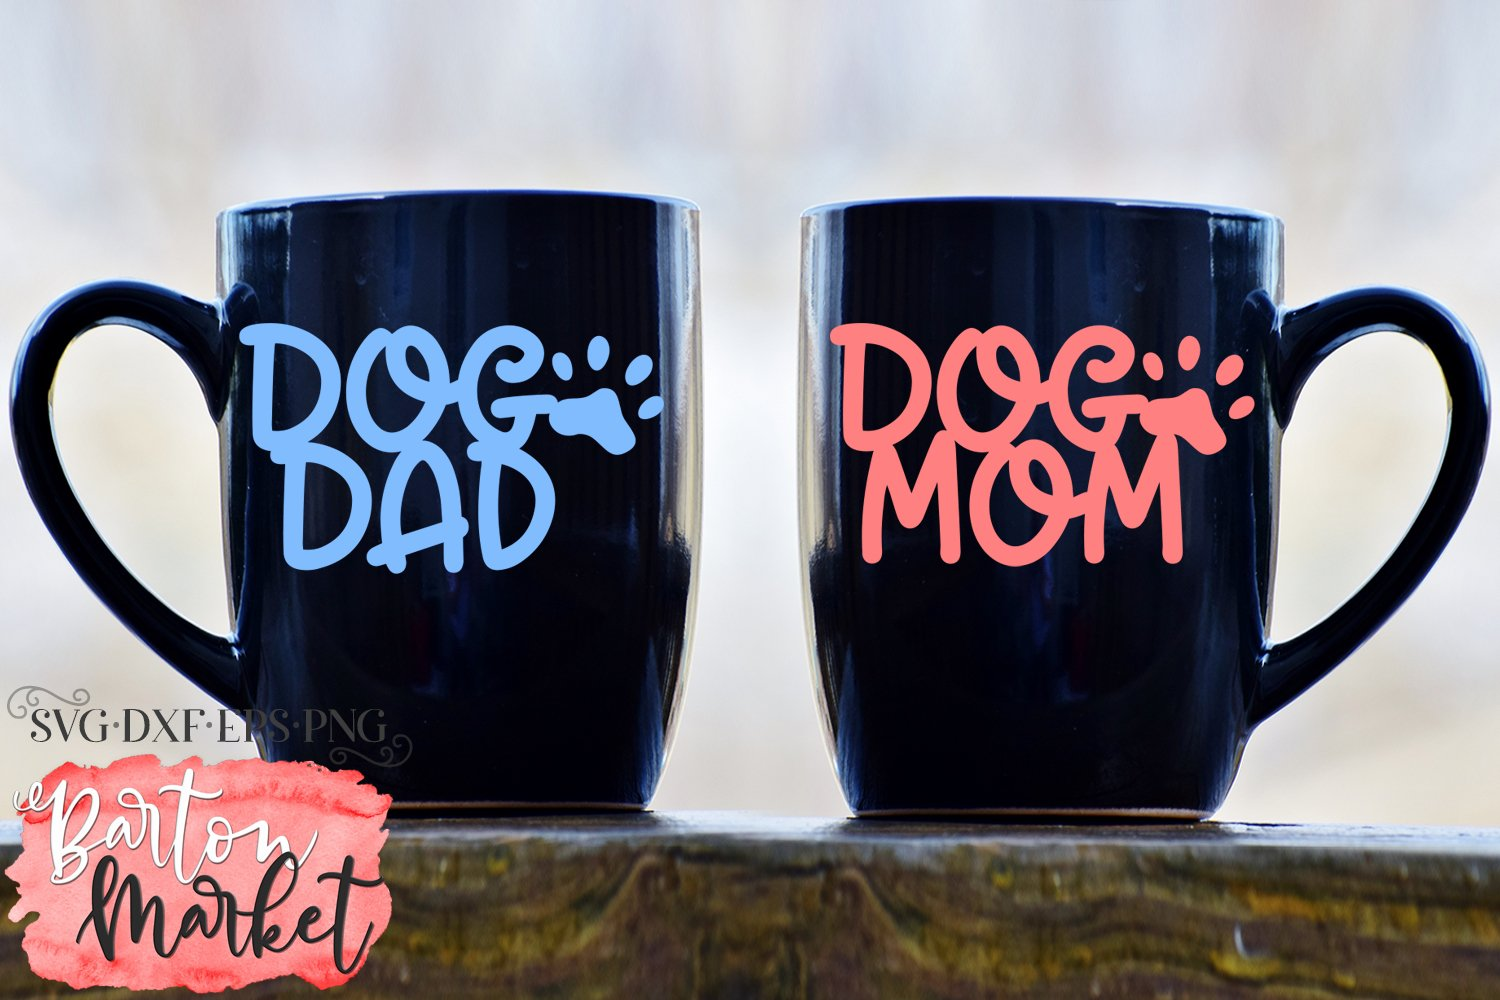 Dog Mom Dog Dad SVG DXF EPS PNG example image 1